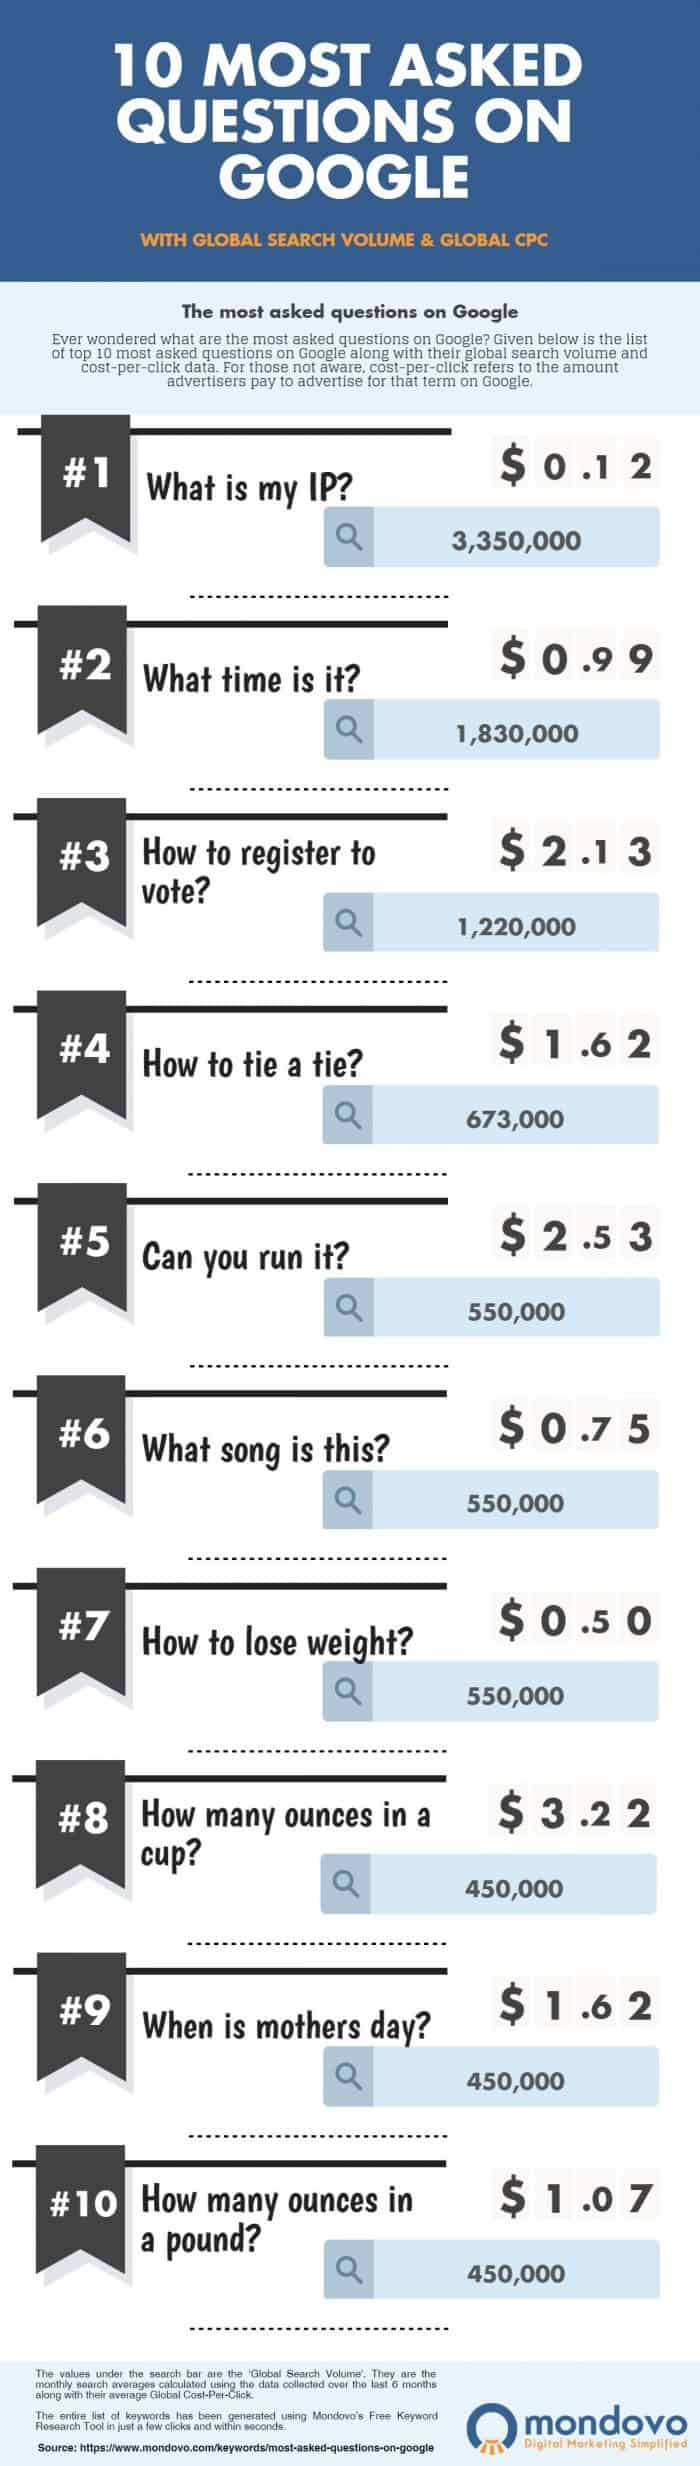 Infographic with a simple design showing 10 most asked questions on Google